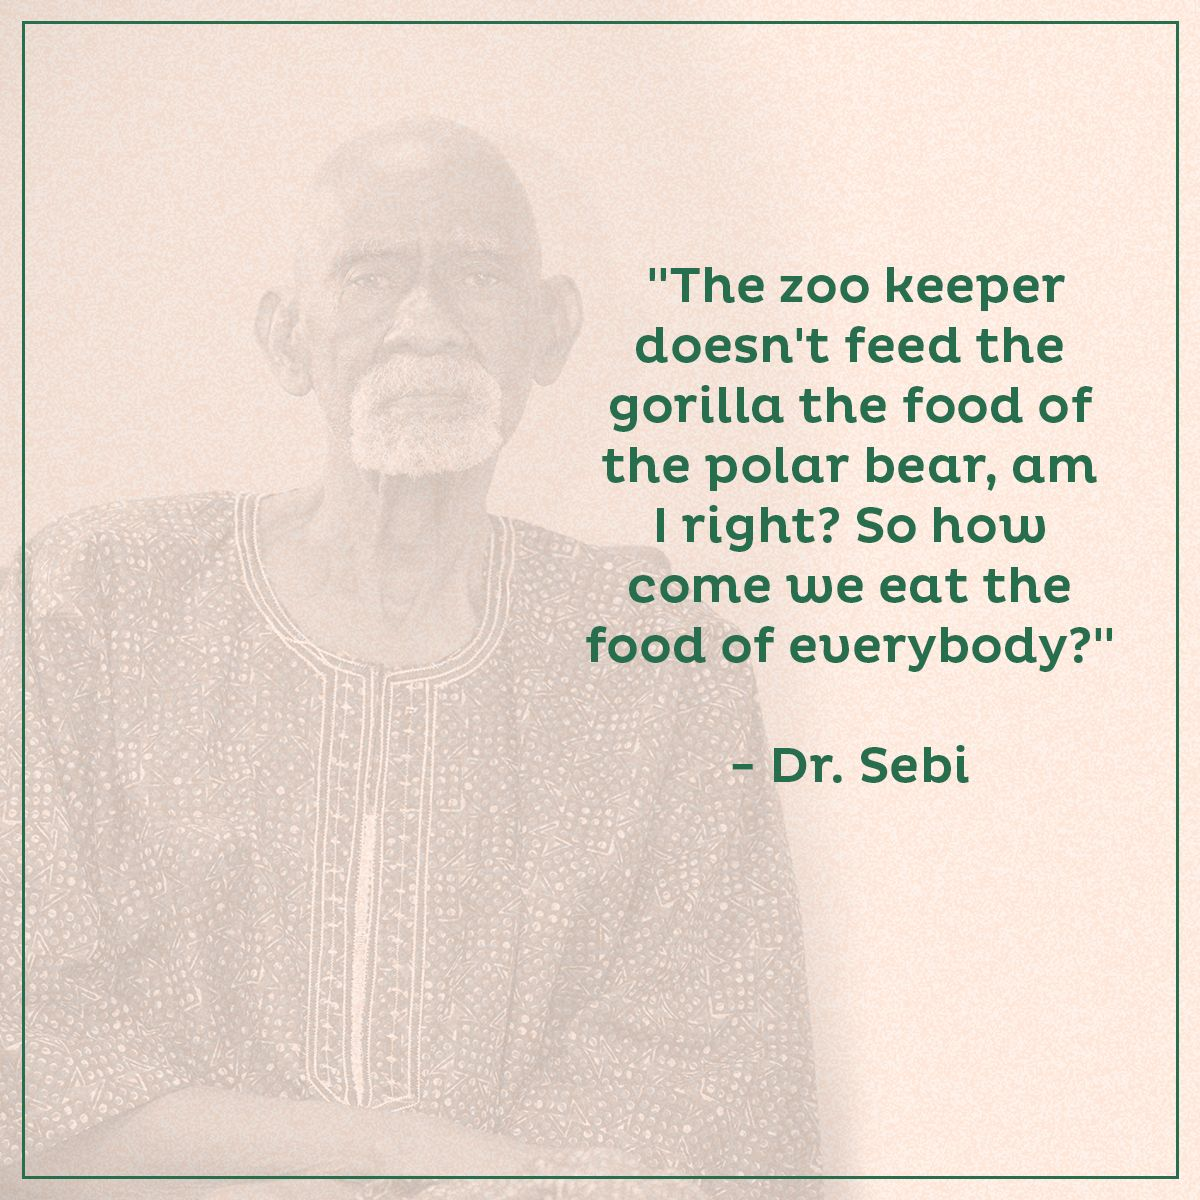 The zoo keeper doesn't feed the gorilla the food of the polar bear